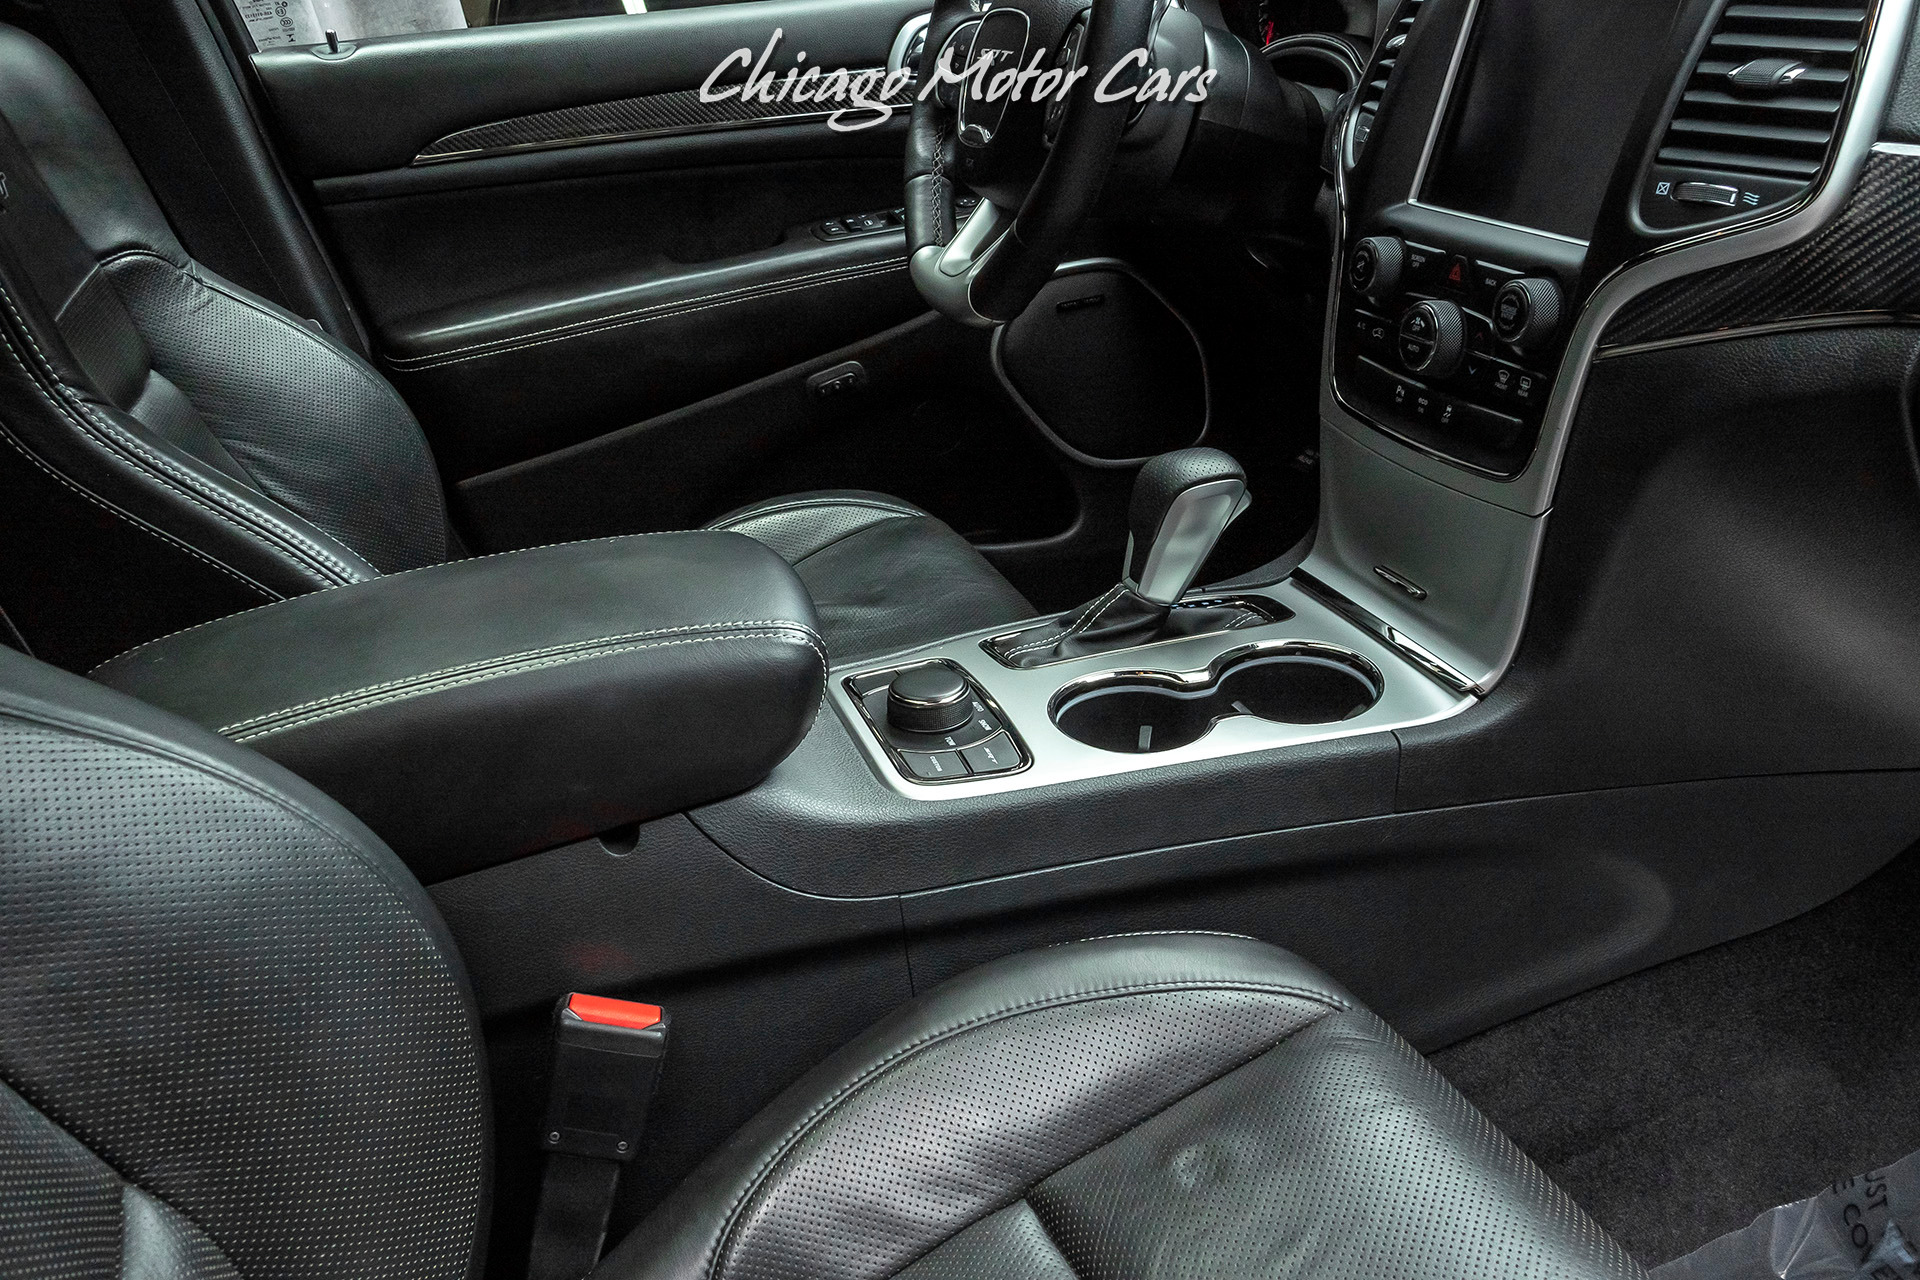 Used 2016 Jeep Grand Cherokee Srt Awd Suv Srt High Performance Audio Panoramic Sunroof For Sale 42 800 Chicago Motor Cars Stock 17354a